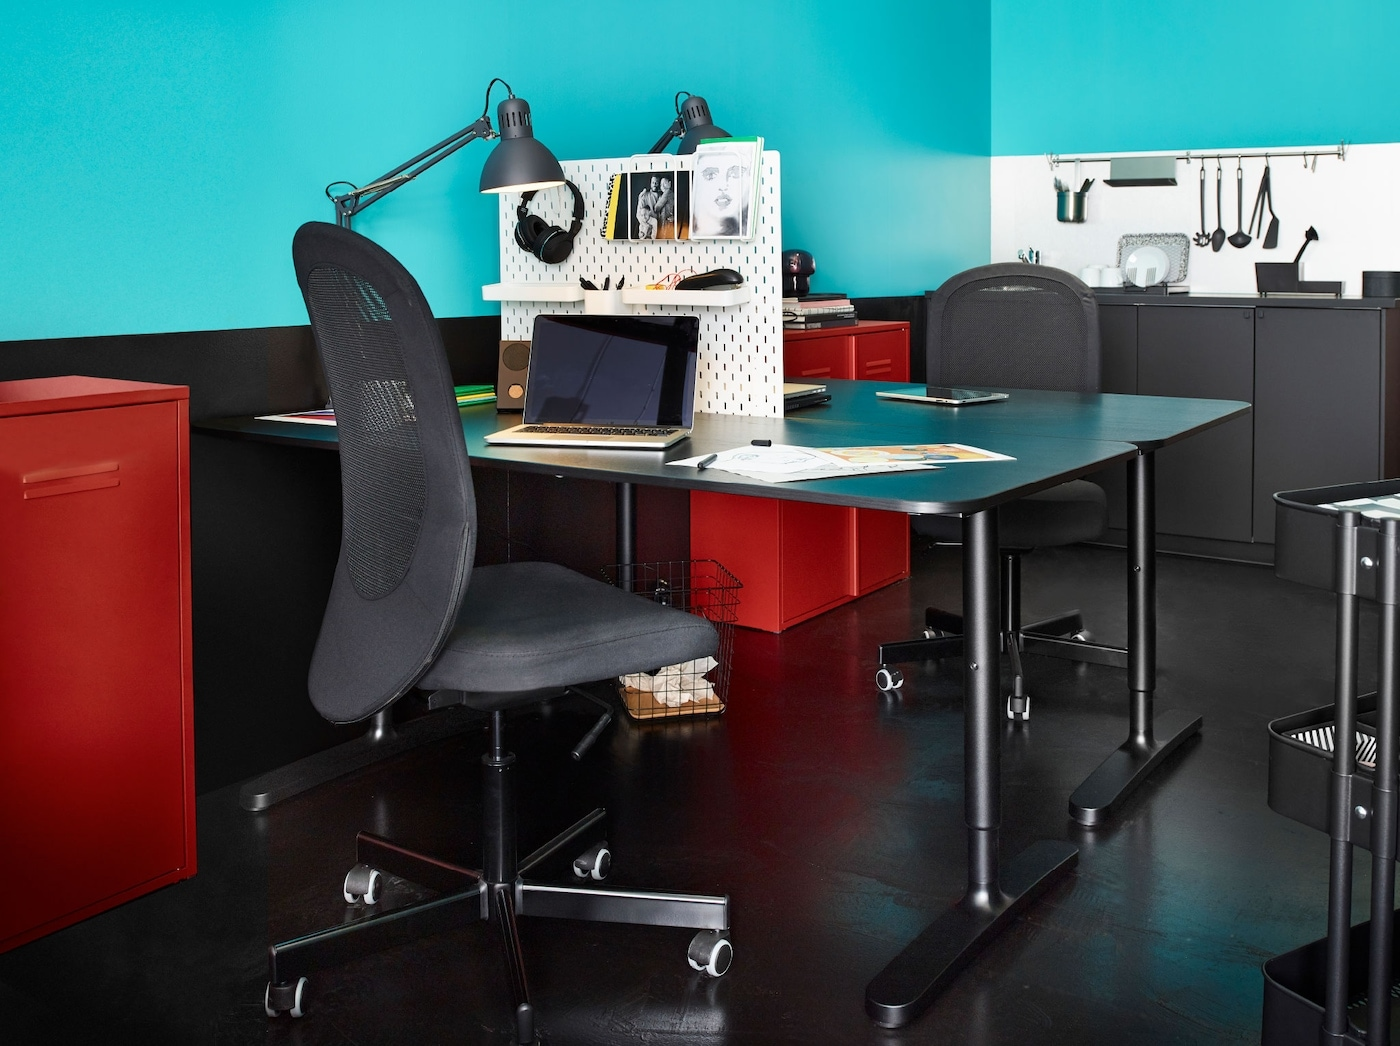 Two facing desks divided by a SKÅDIS pegboard, each with a FINTAN chair, a TERTIAL work lamp and a red IVAR cabinet.